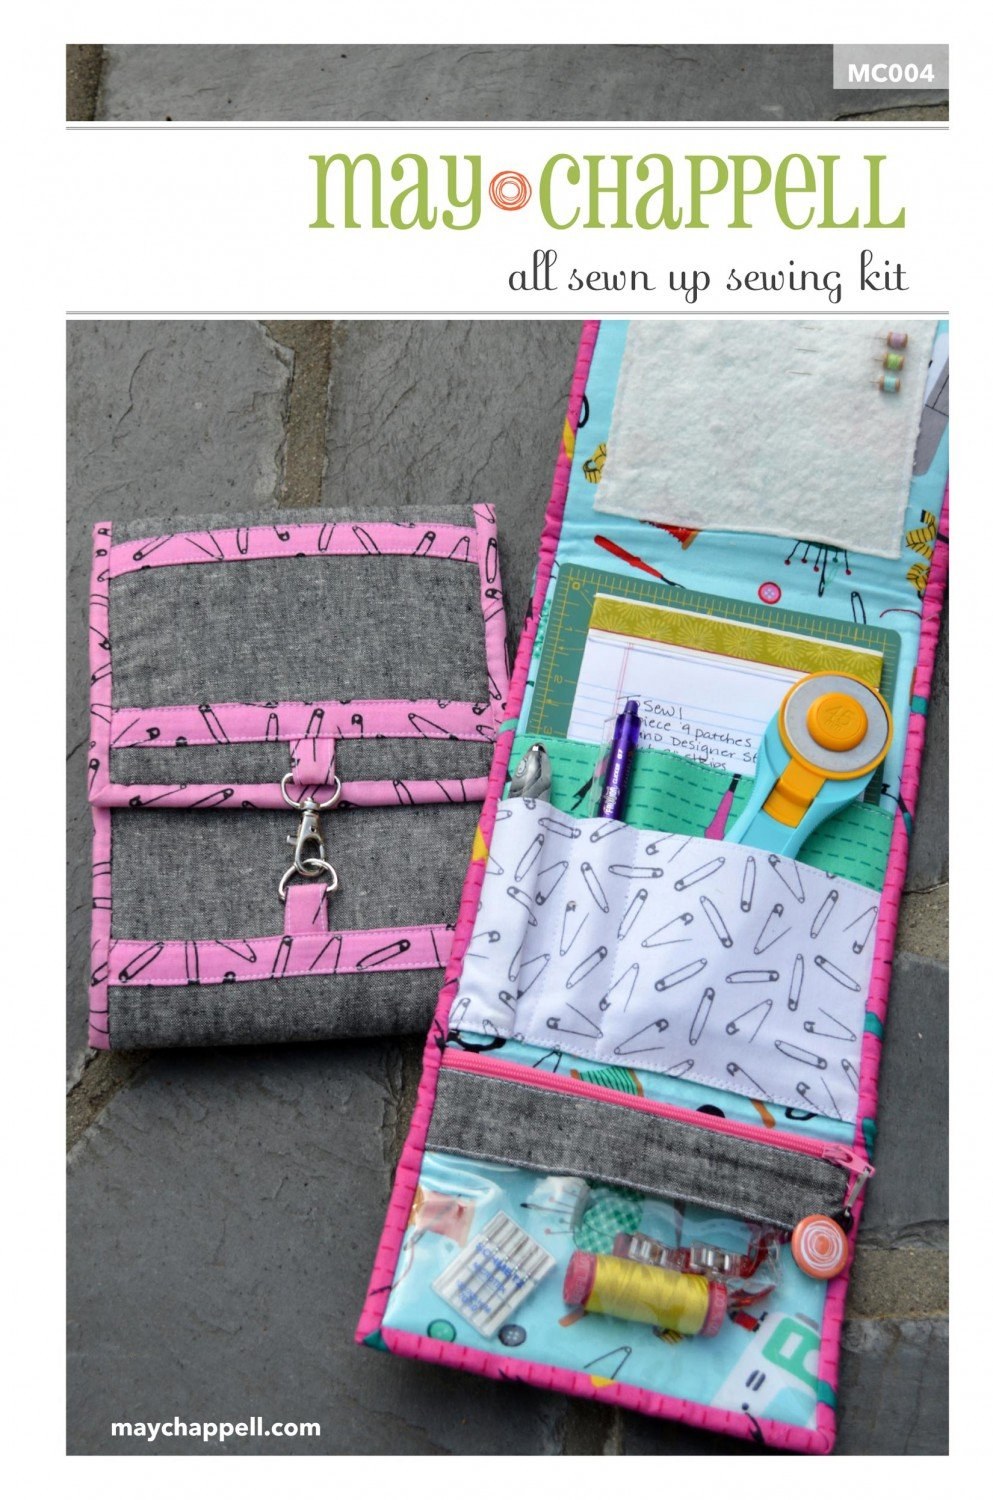 All Sewn Up Sewing Kit